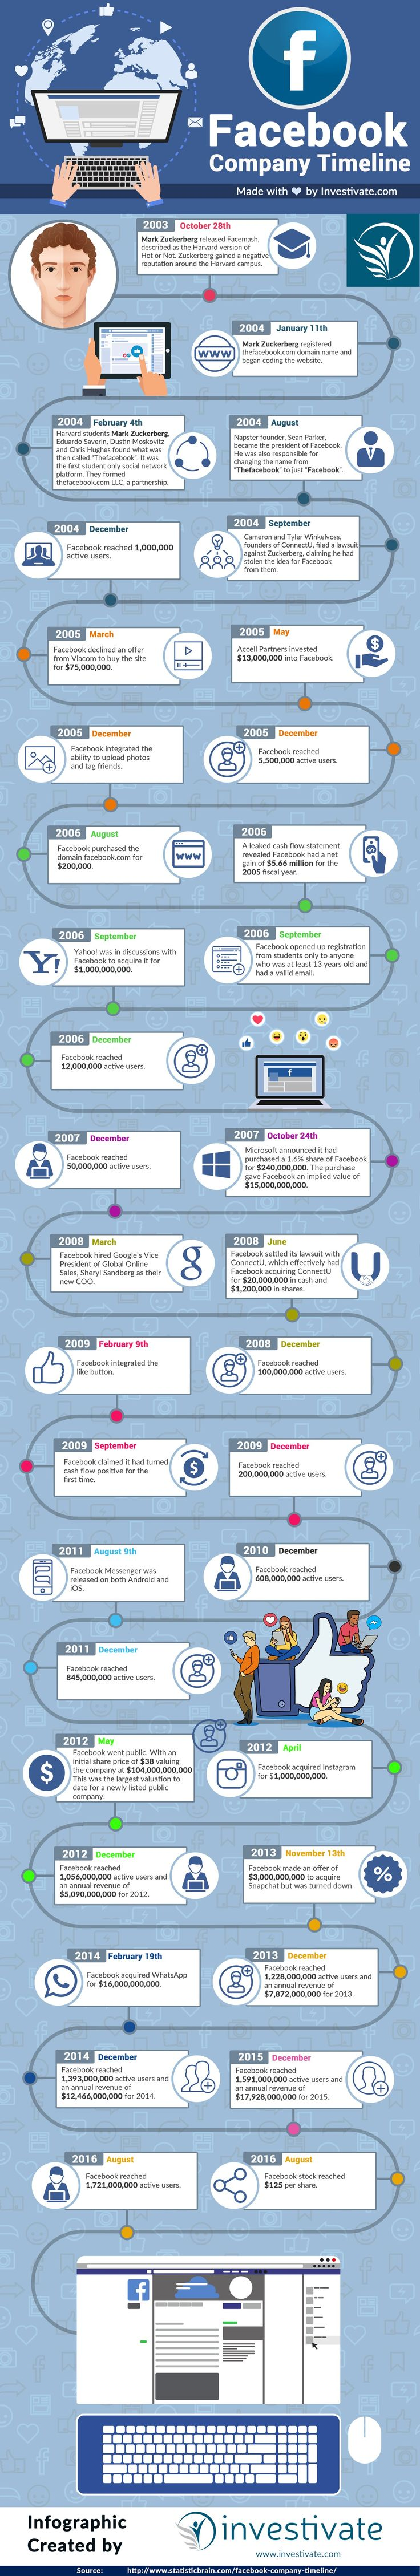 History of Facebook – When and How It Was Founded https://www.investivate.com/facebook-history-infographic/ #Facebook #Startup #Success #Entrepreneur #Infographic #Money